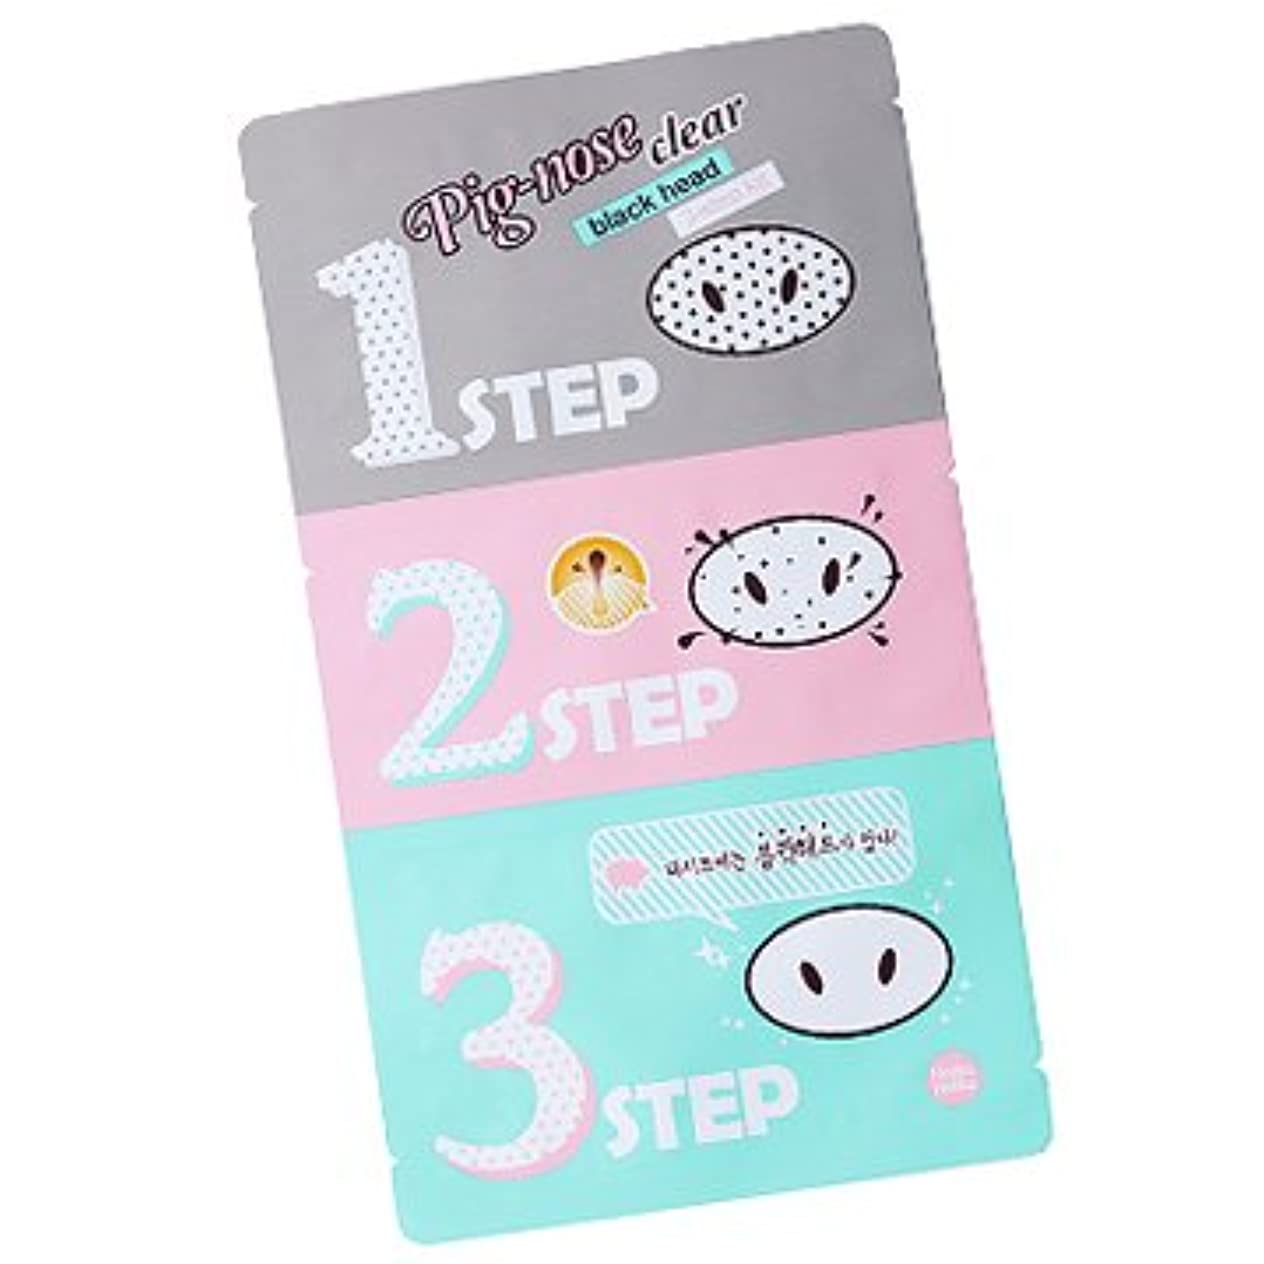 Holika Holika Pig Nose Clear Black Head 3-Step Kit 10EA (Nose Pack) ホリカホリカ ピグノーズクリアブラックヘッド3-Stepキット(鼻パック) 10pcs...